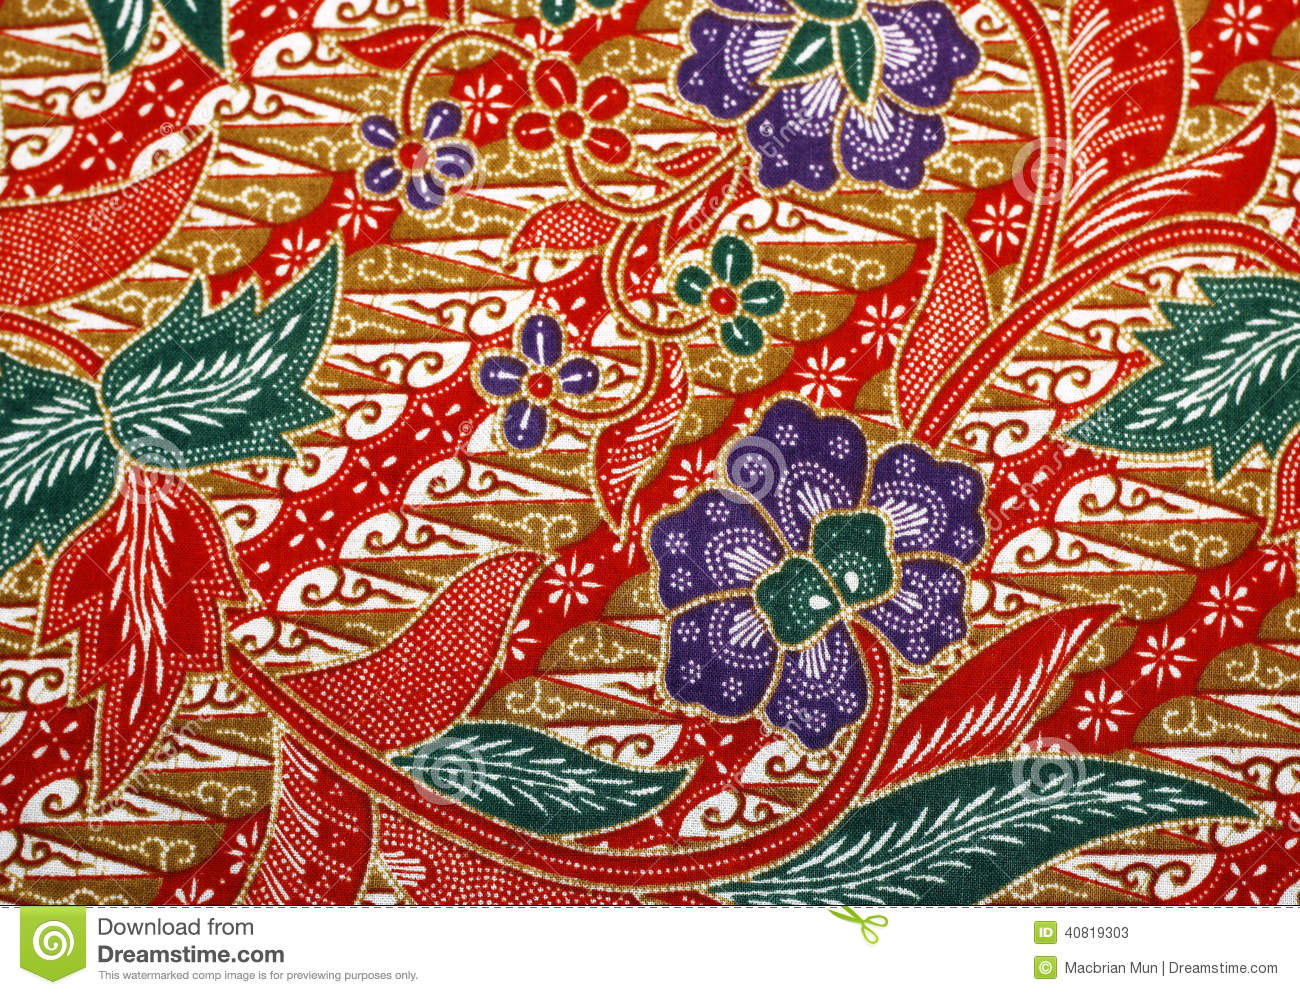 Fabric With Floral Batik Pattern Stock Image - Image of